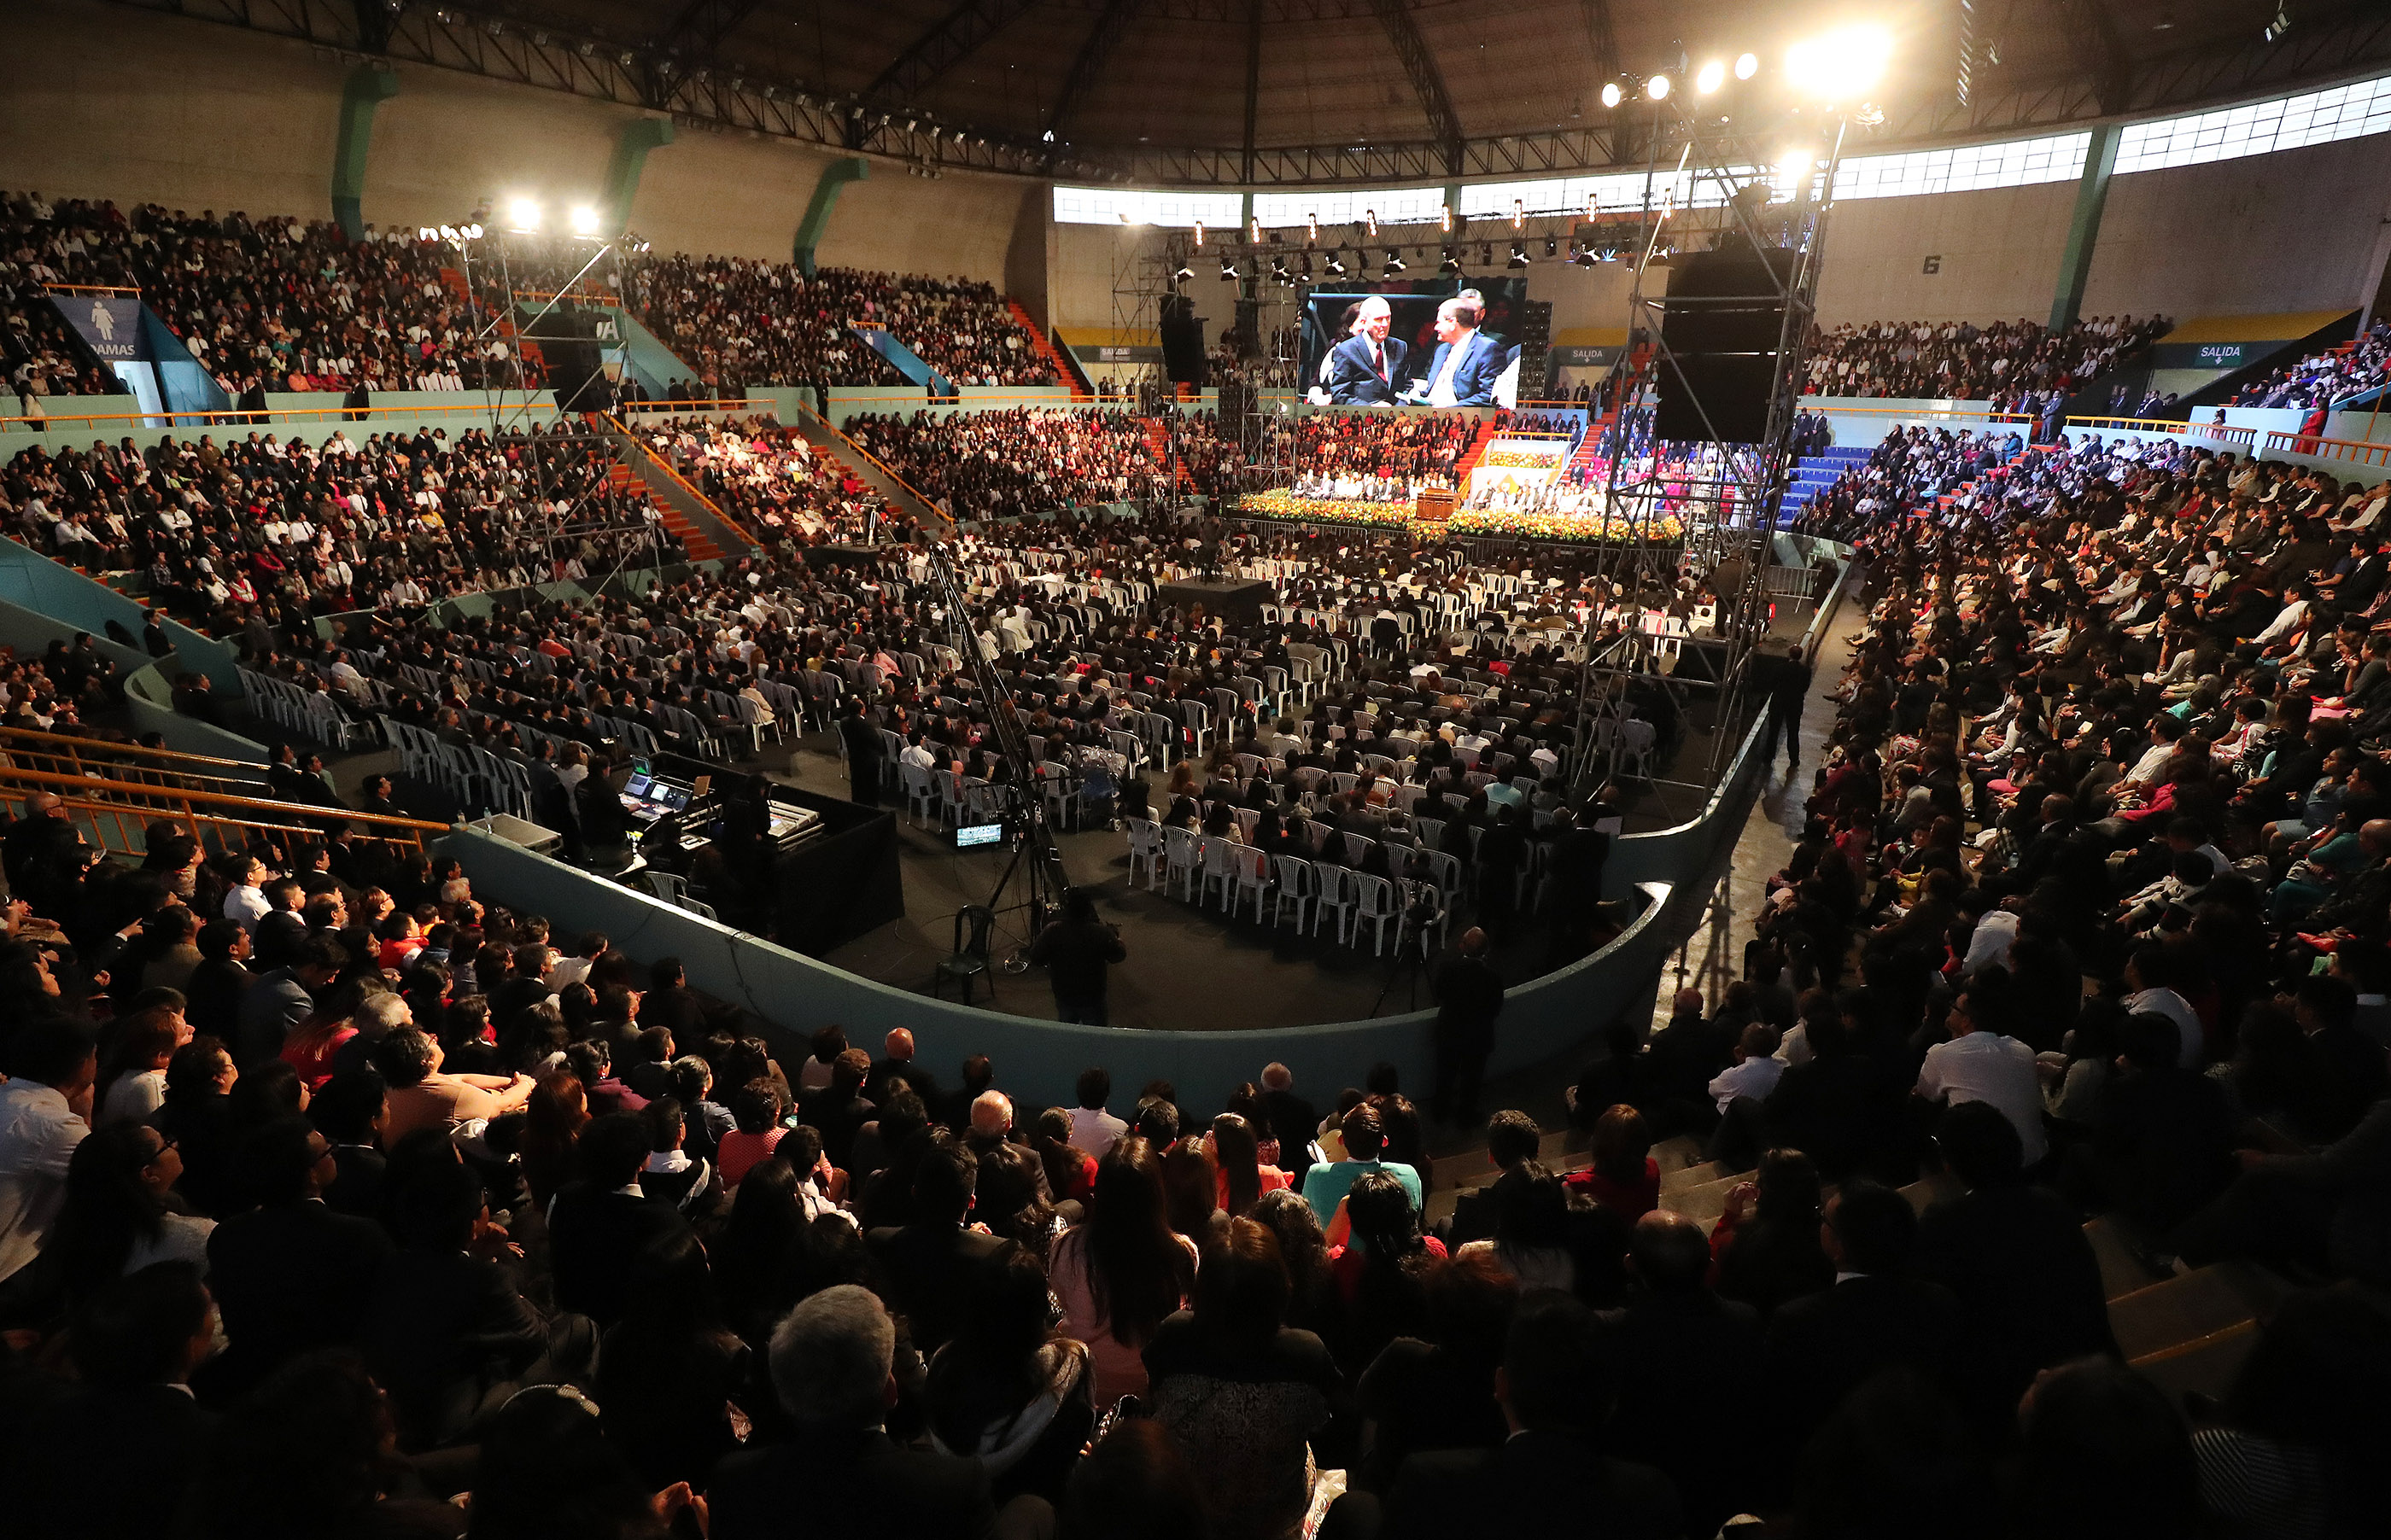 Attendees listen during a devotional with President Russell M. Nelson of The Church of Jesus Christ of Latter-day Saints in Lima, Peru, on Oct. 20, 2018.